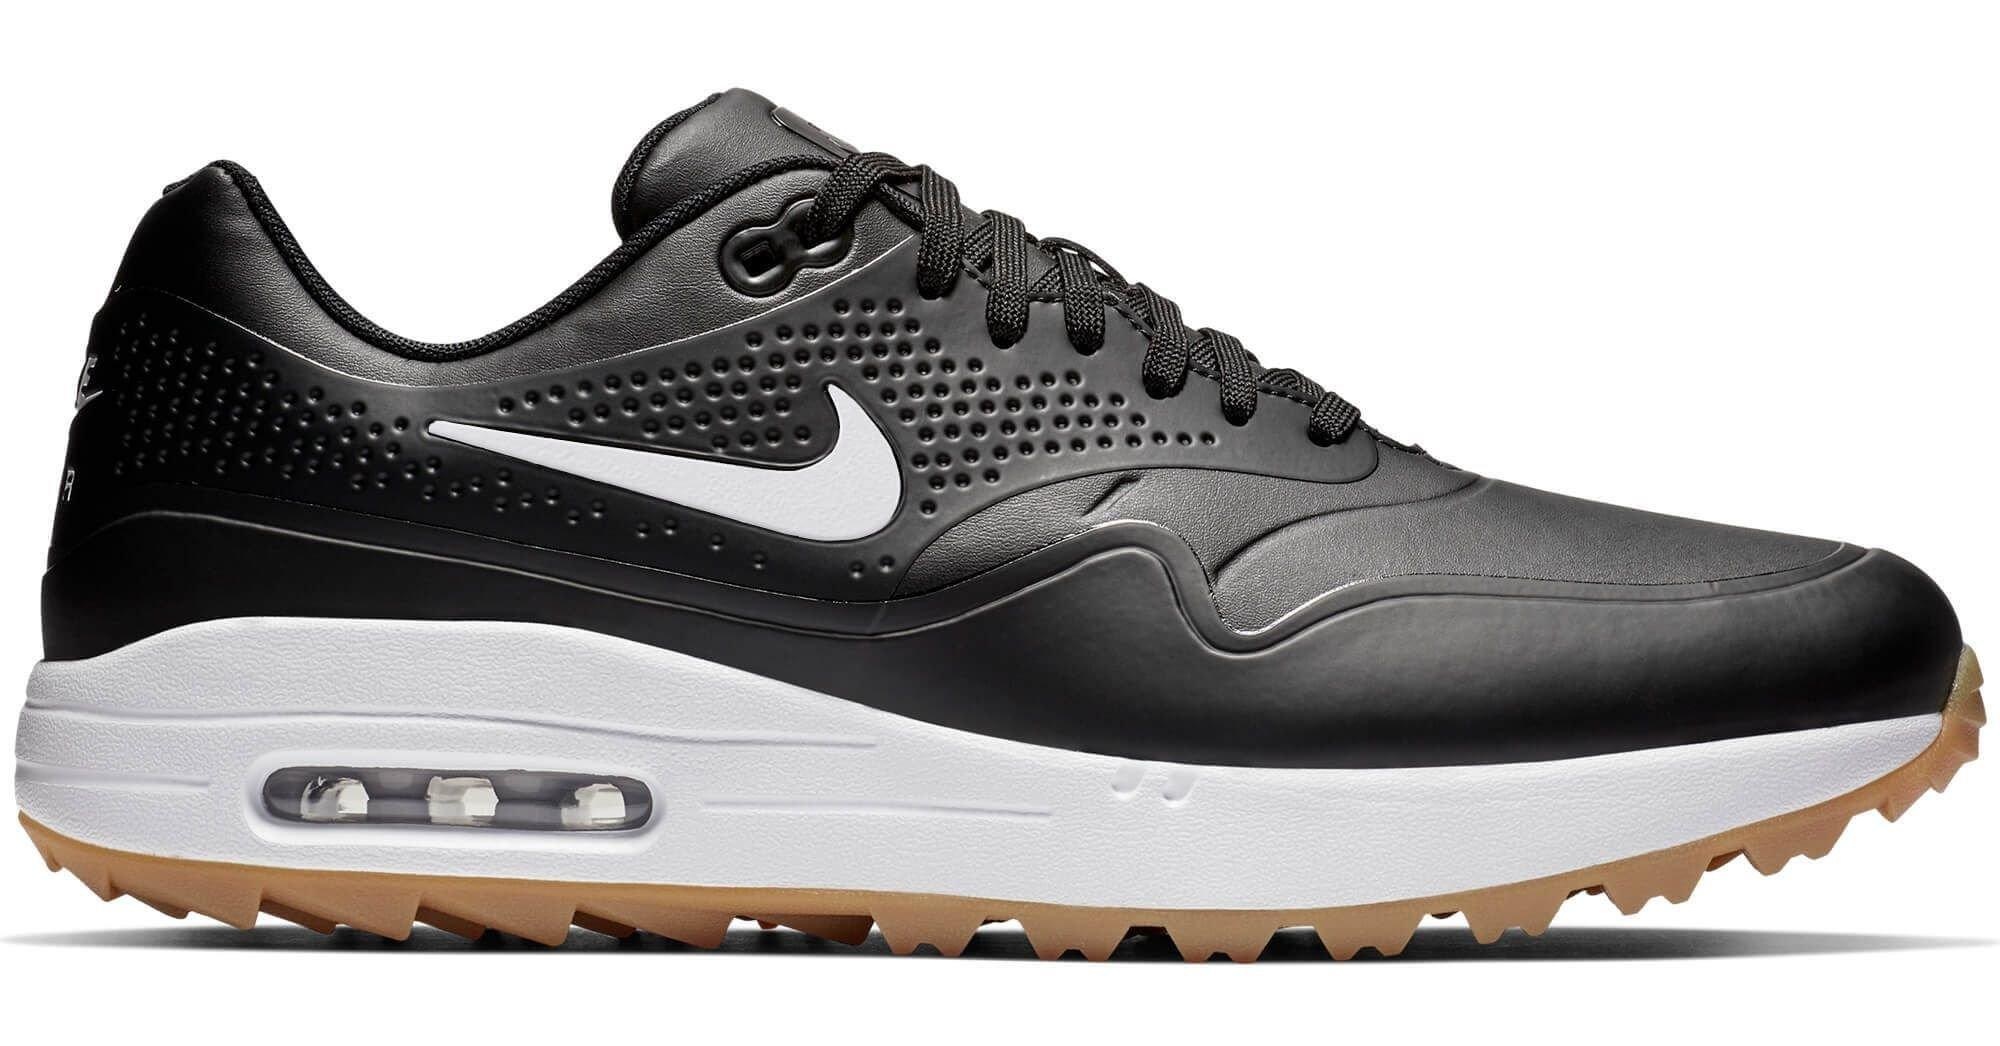 Nike Air Max 1 G Golf Shoes Black/White/Gum - Contrast Swoosh